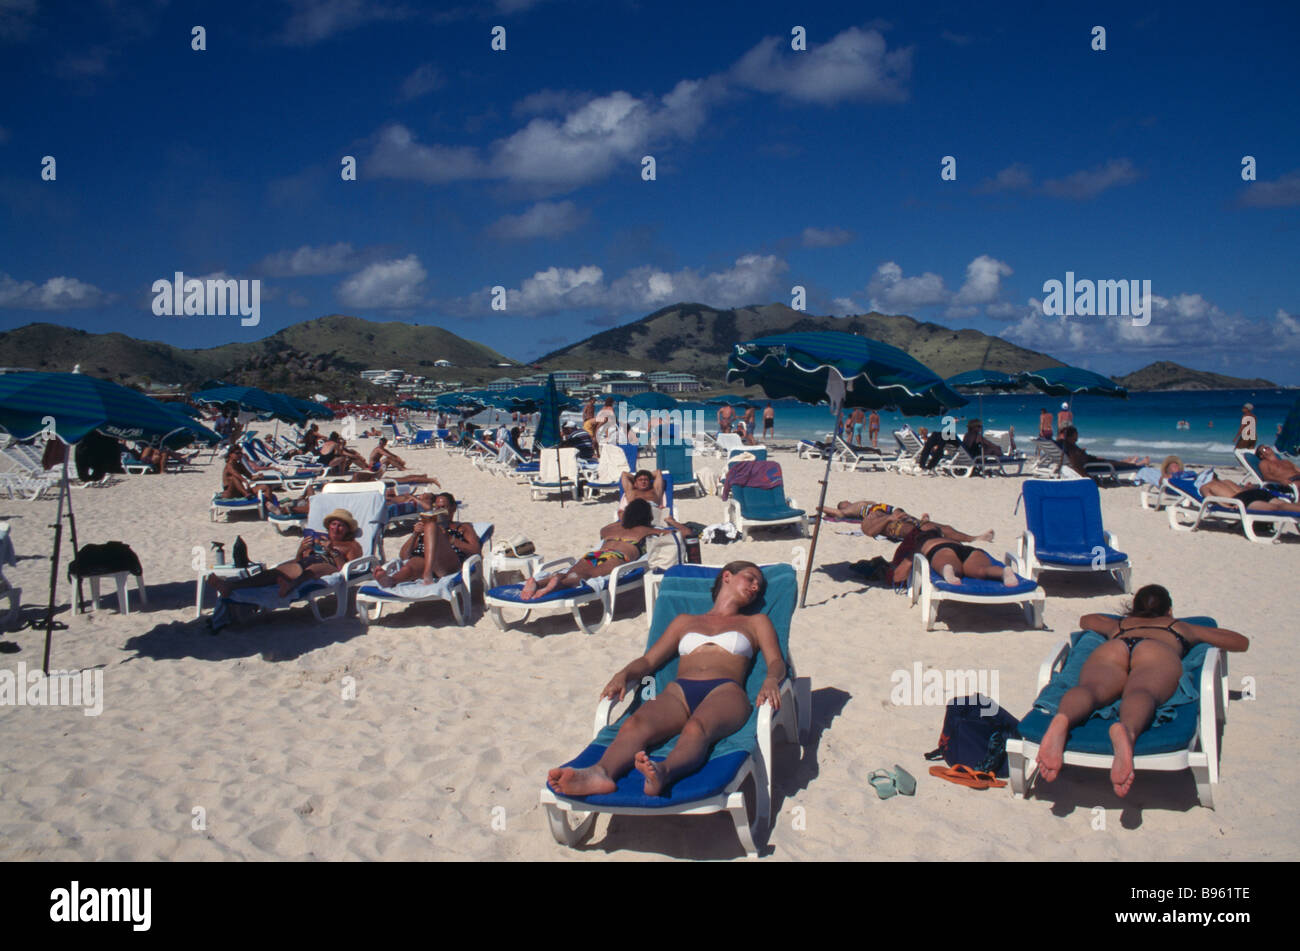 WEST INDIES French Antilles St Martin Orient Beach With People Sunbathing On Loungers